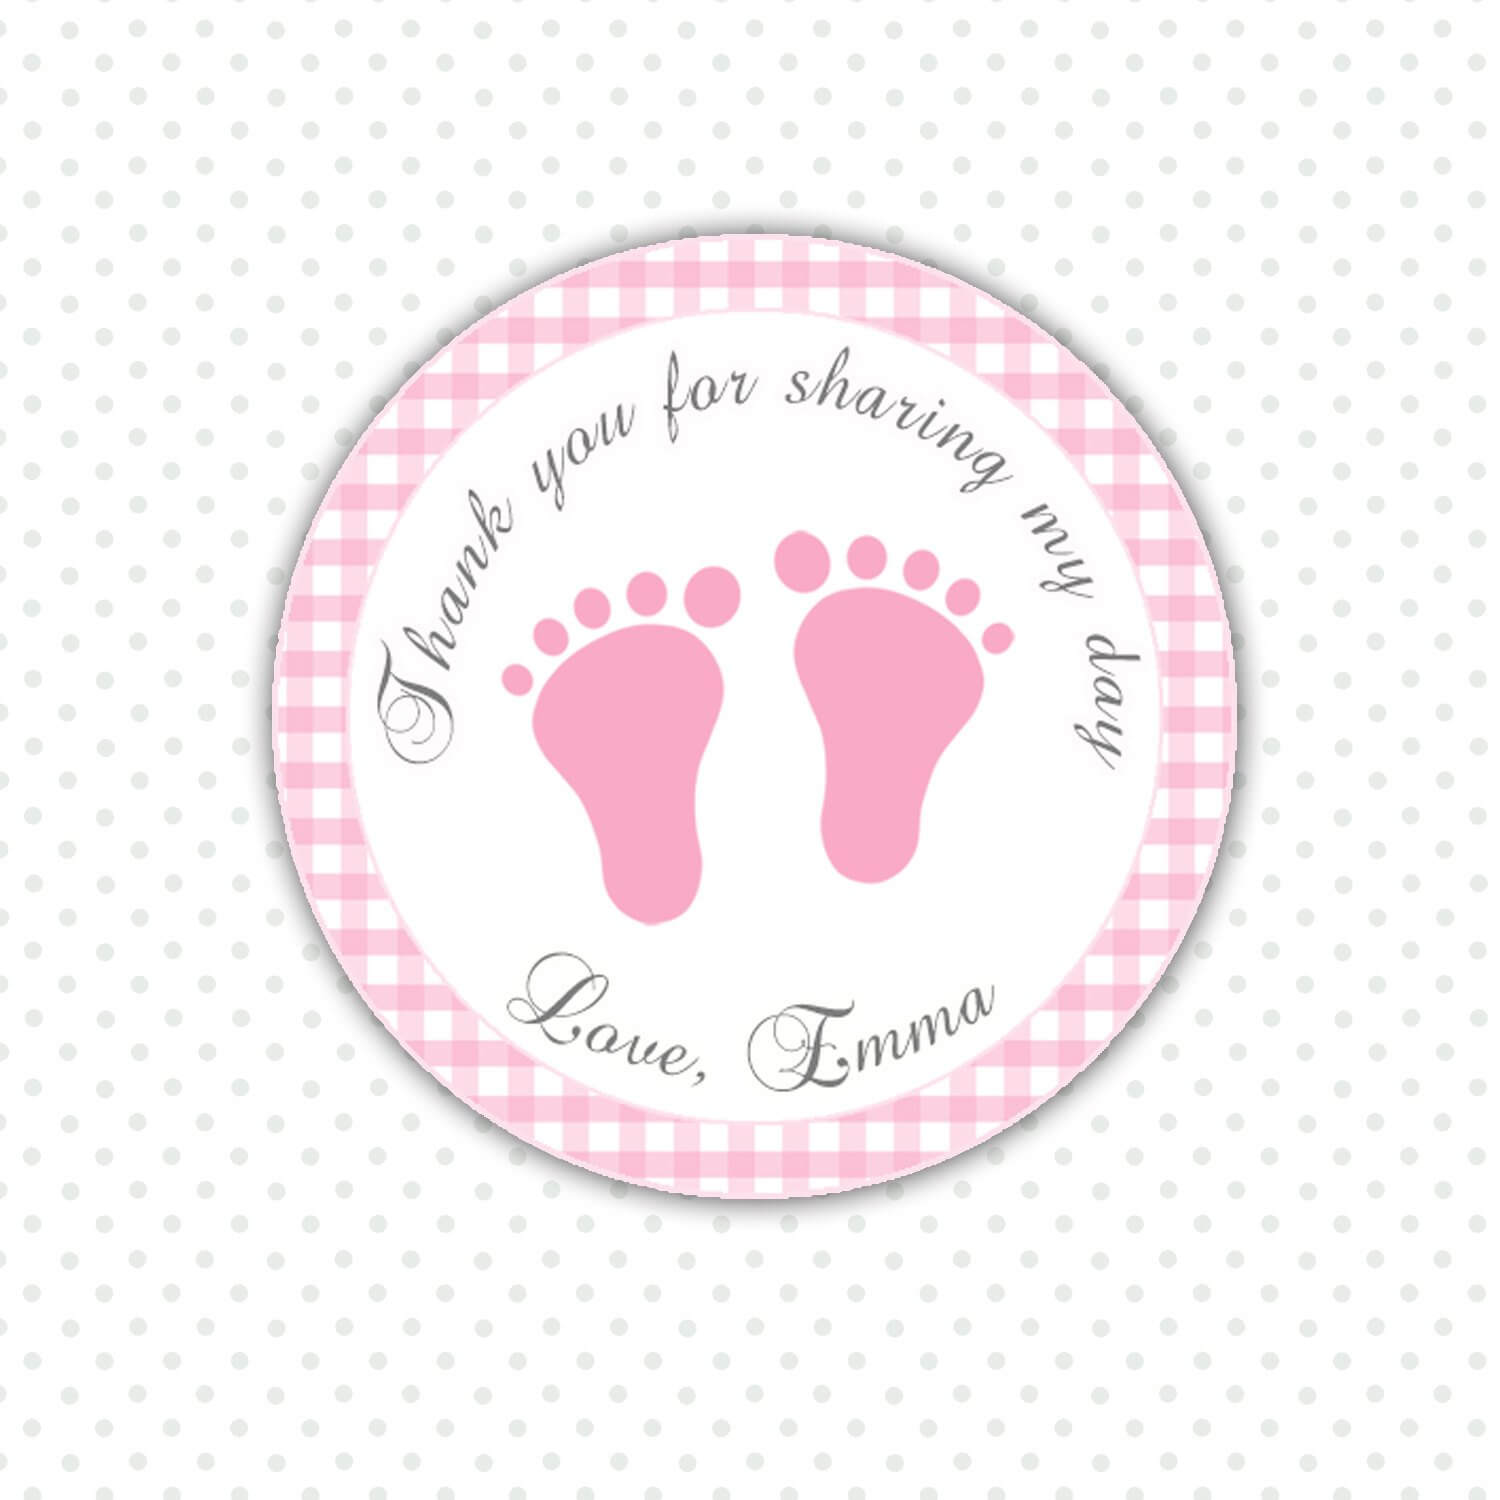 Baby Shower Labels For Favors Templates • Baby Showers Design In Baby Shower Label Template For Favors